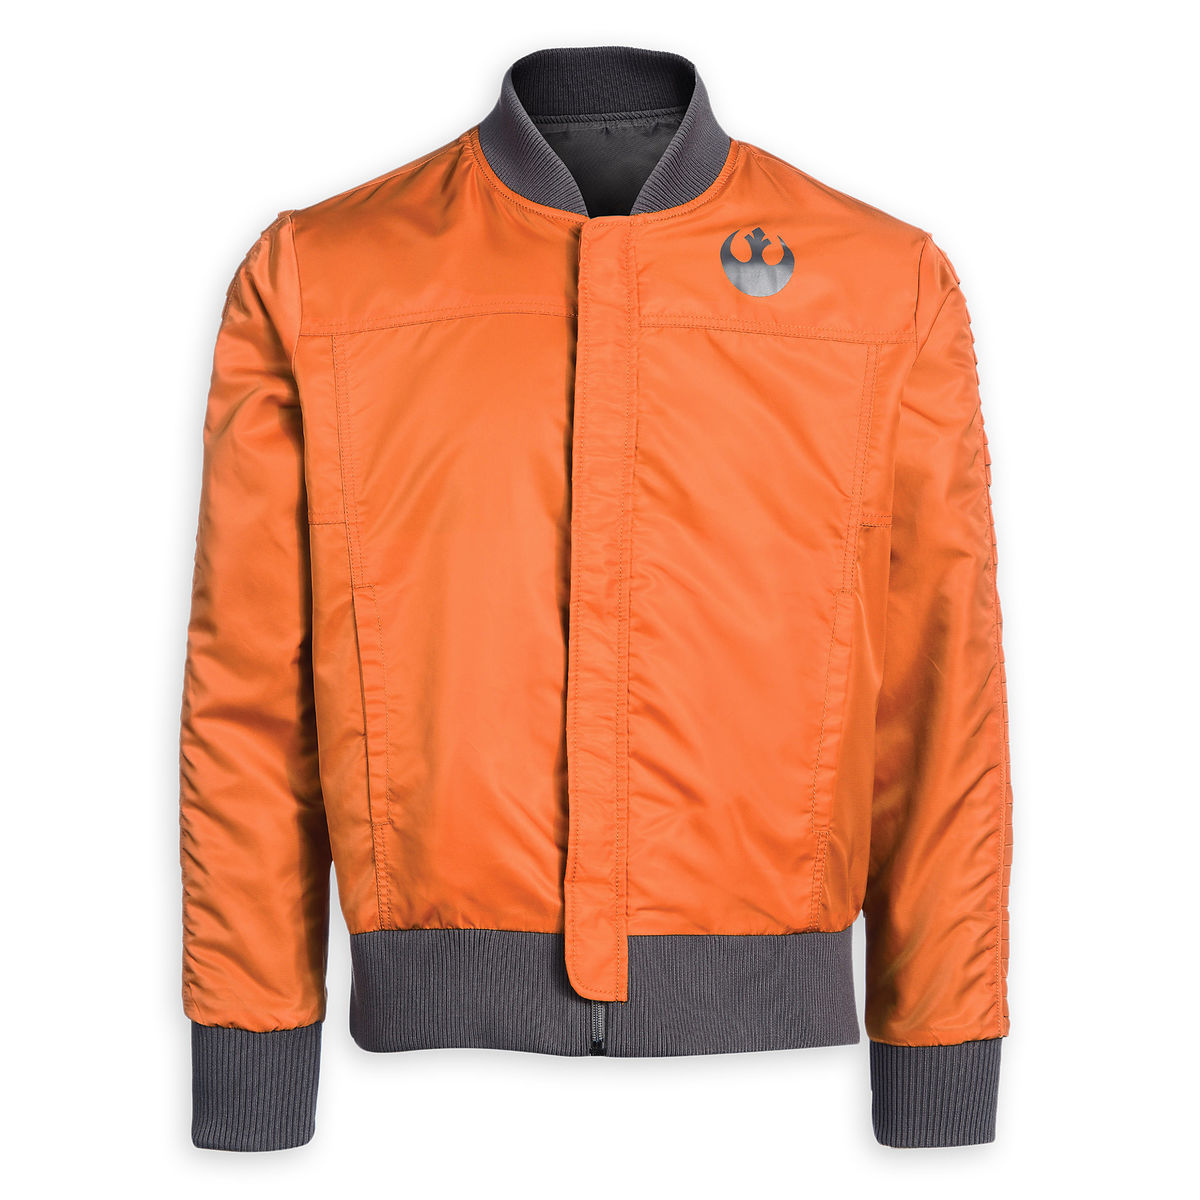 Product Image Of Star Wars Rebel Pilot Jacket For Men By Musterbrand 1